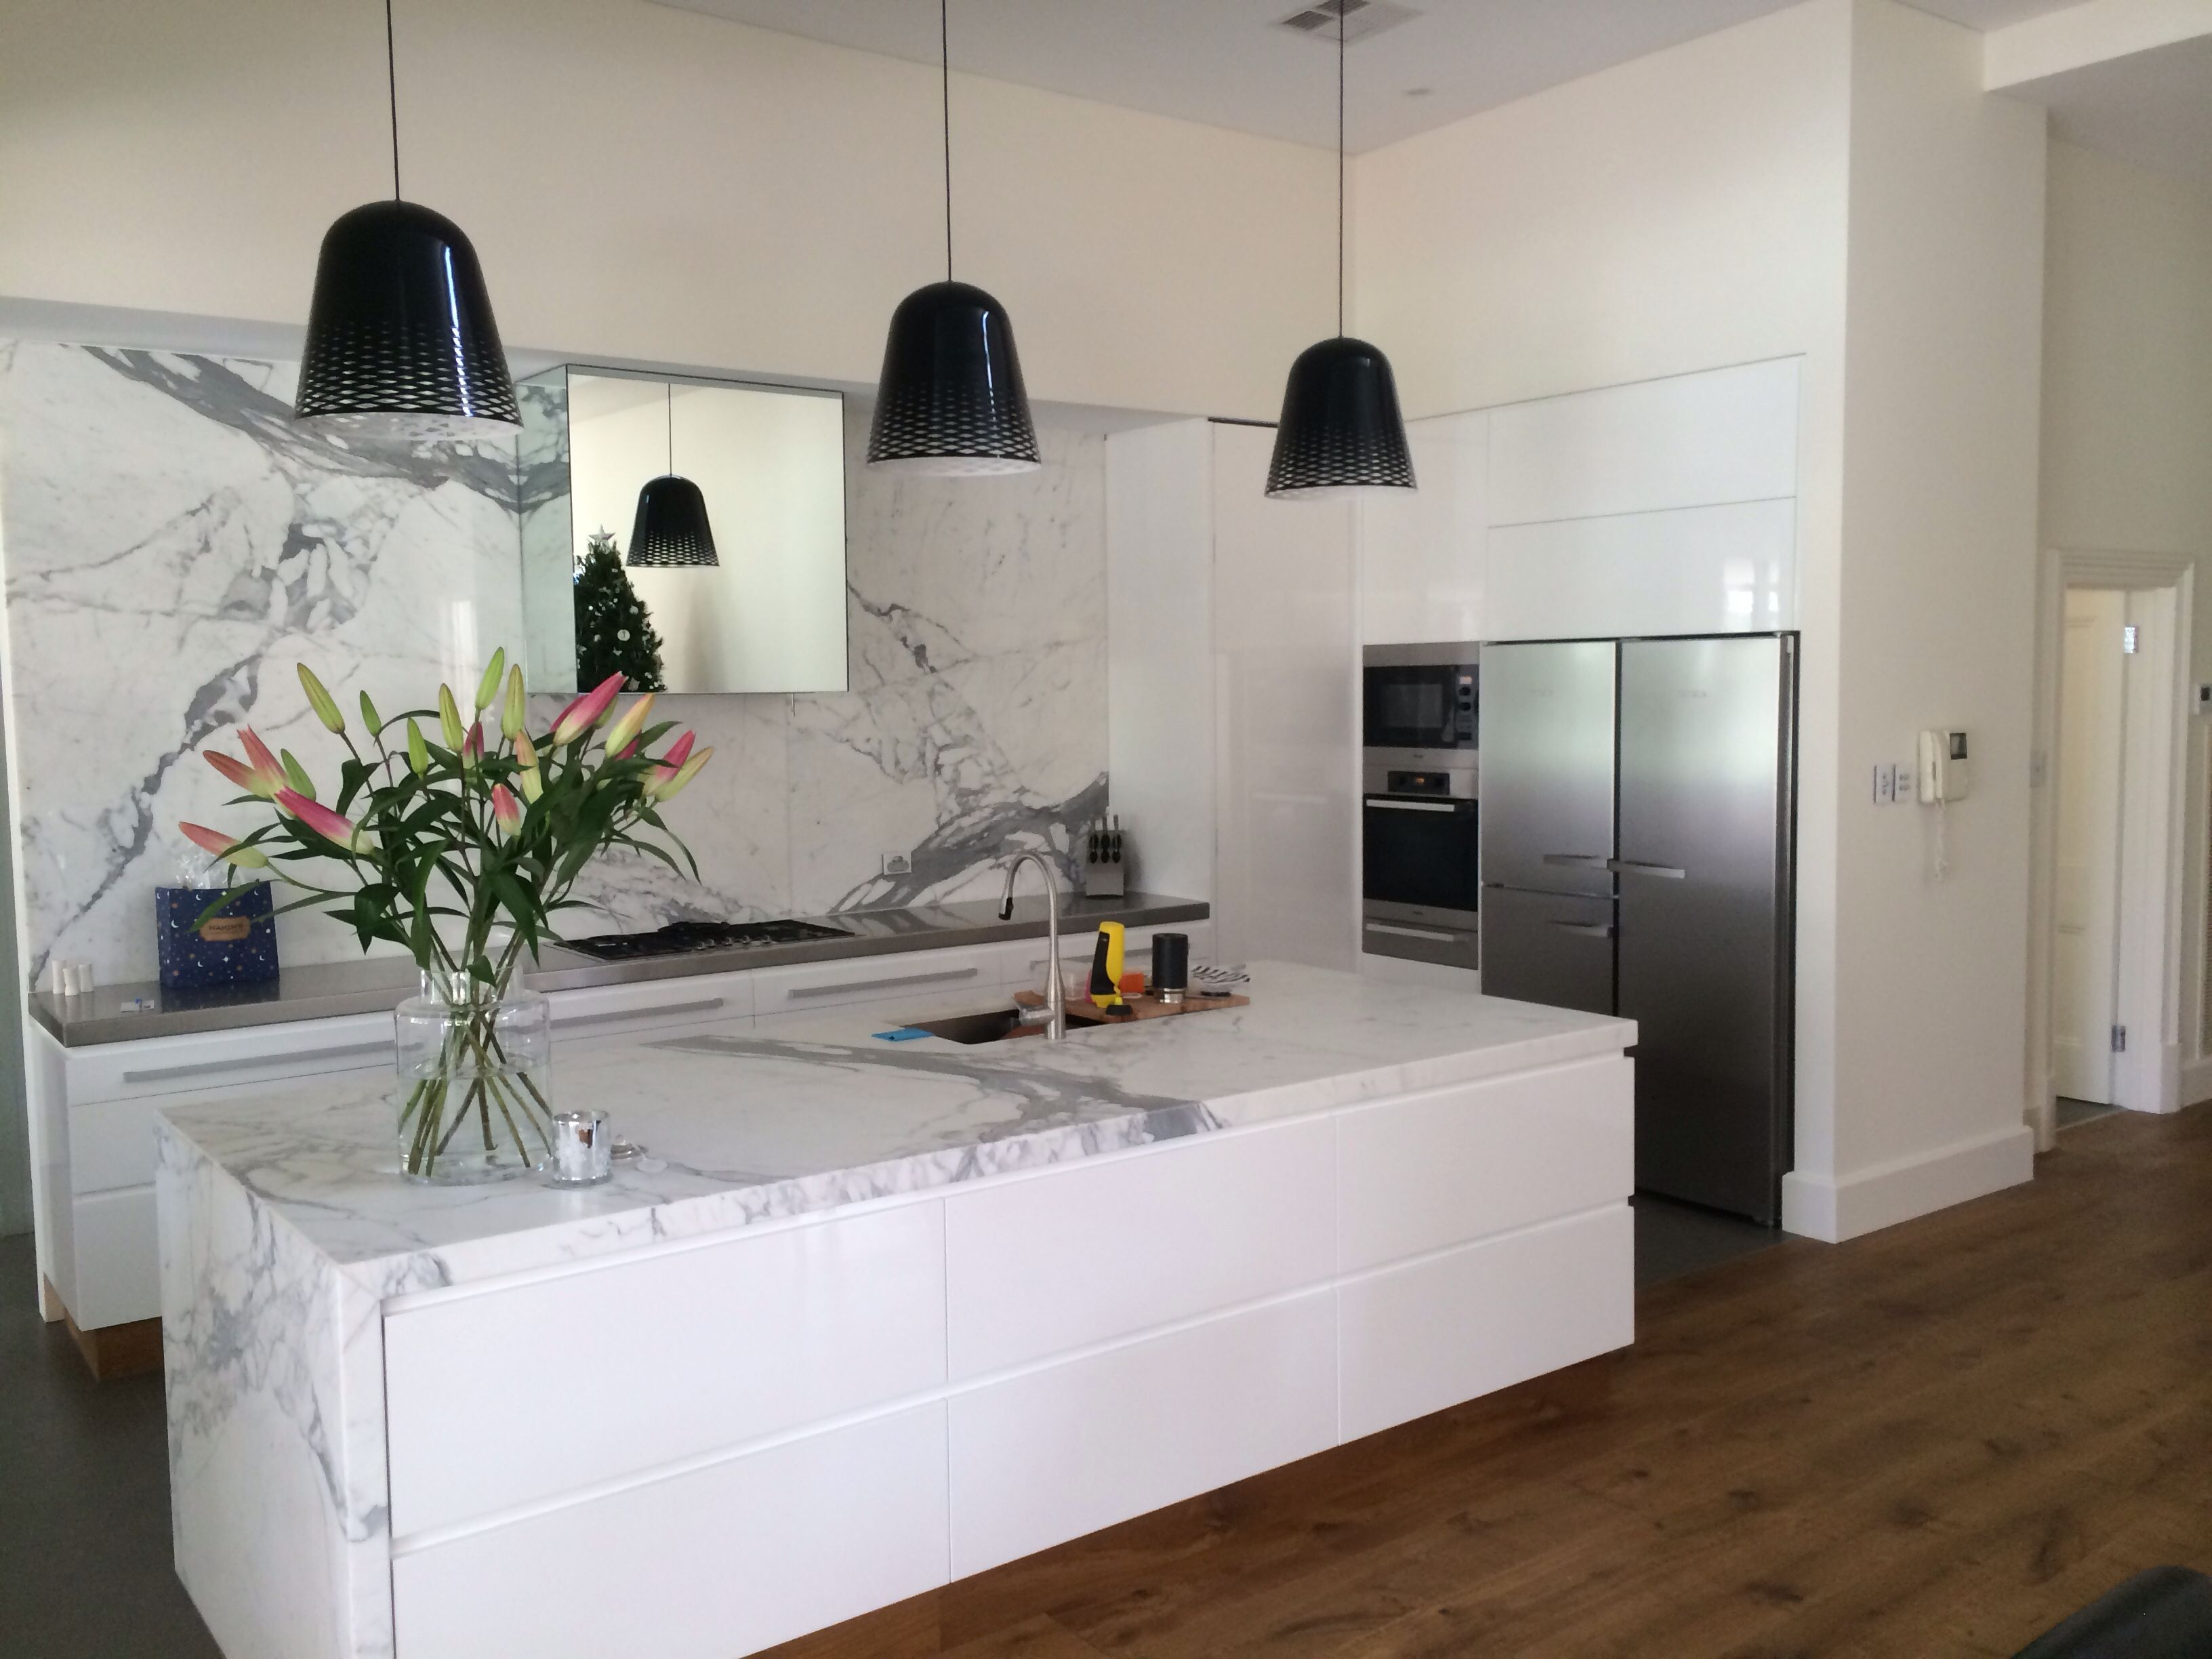 white gloss 2 pac kitchen with marble island and splashback rear